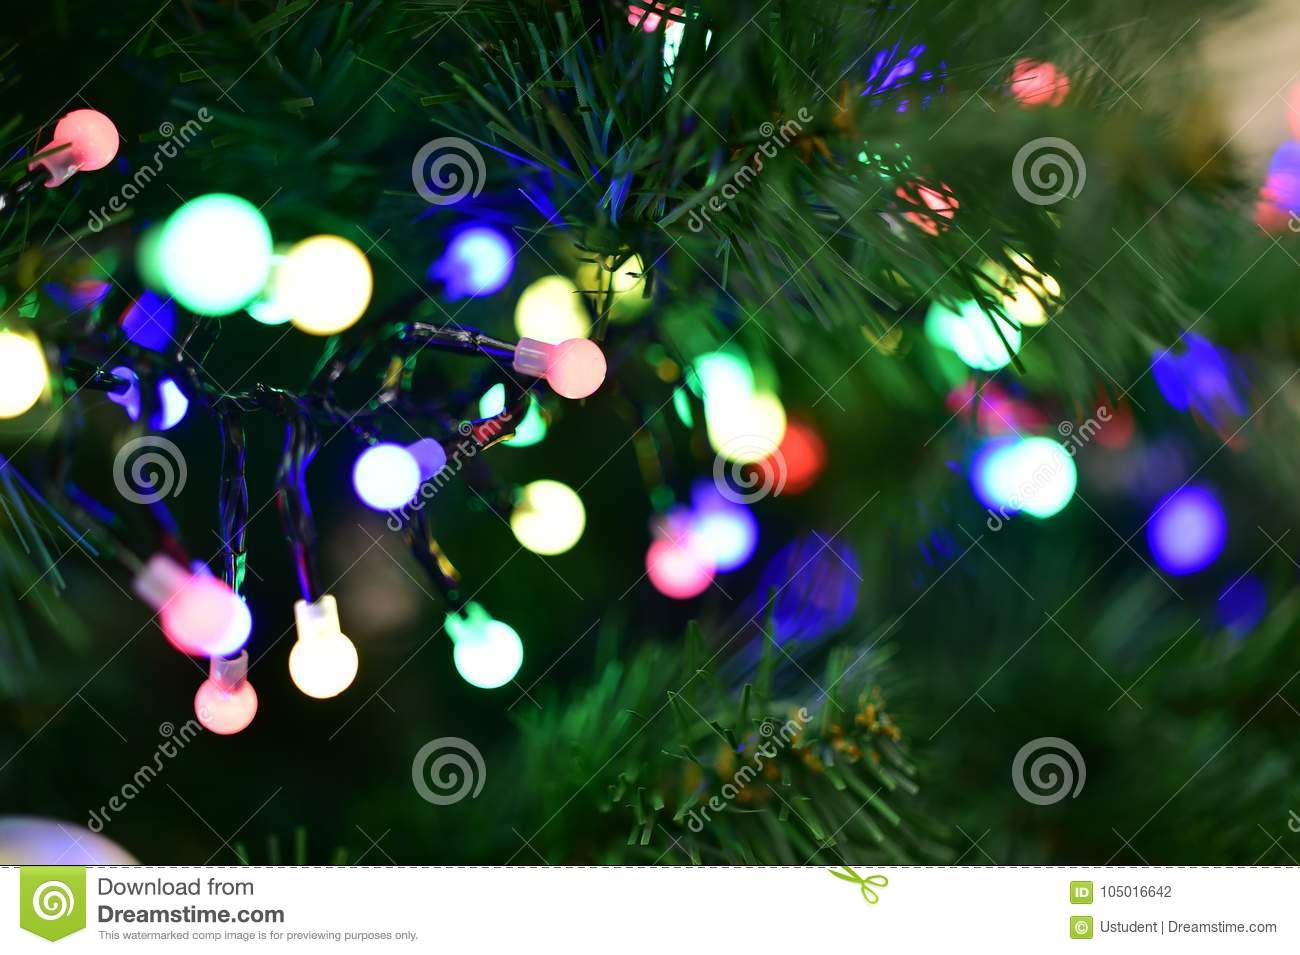 Christmas Tree With Garland Lights Of Different Colors Stock Photo